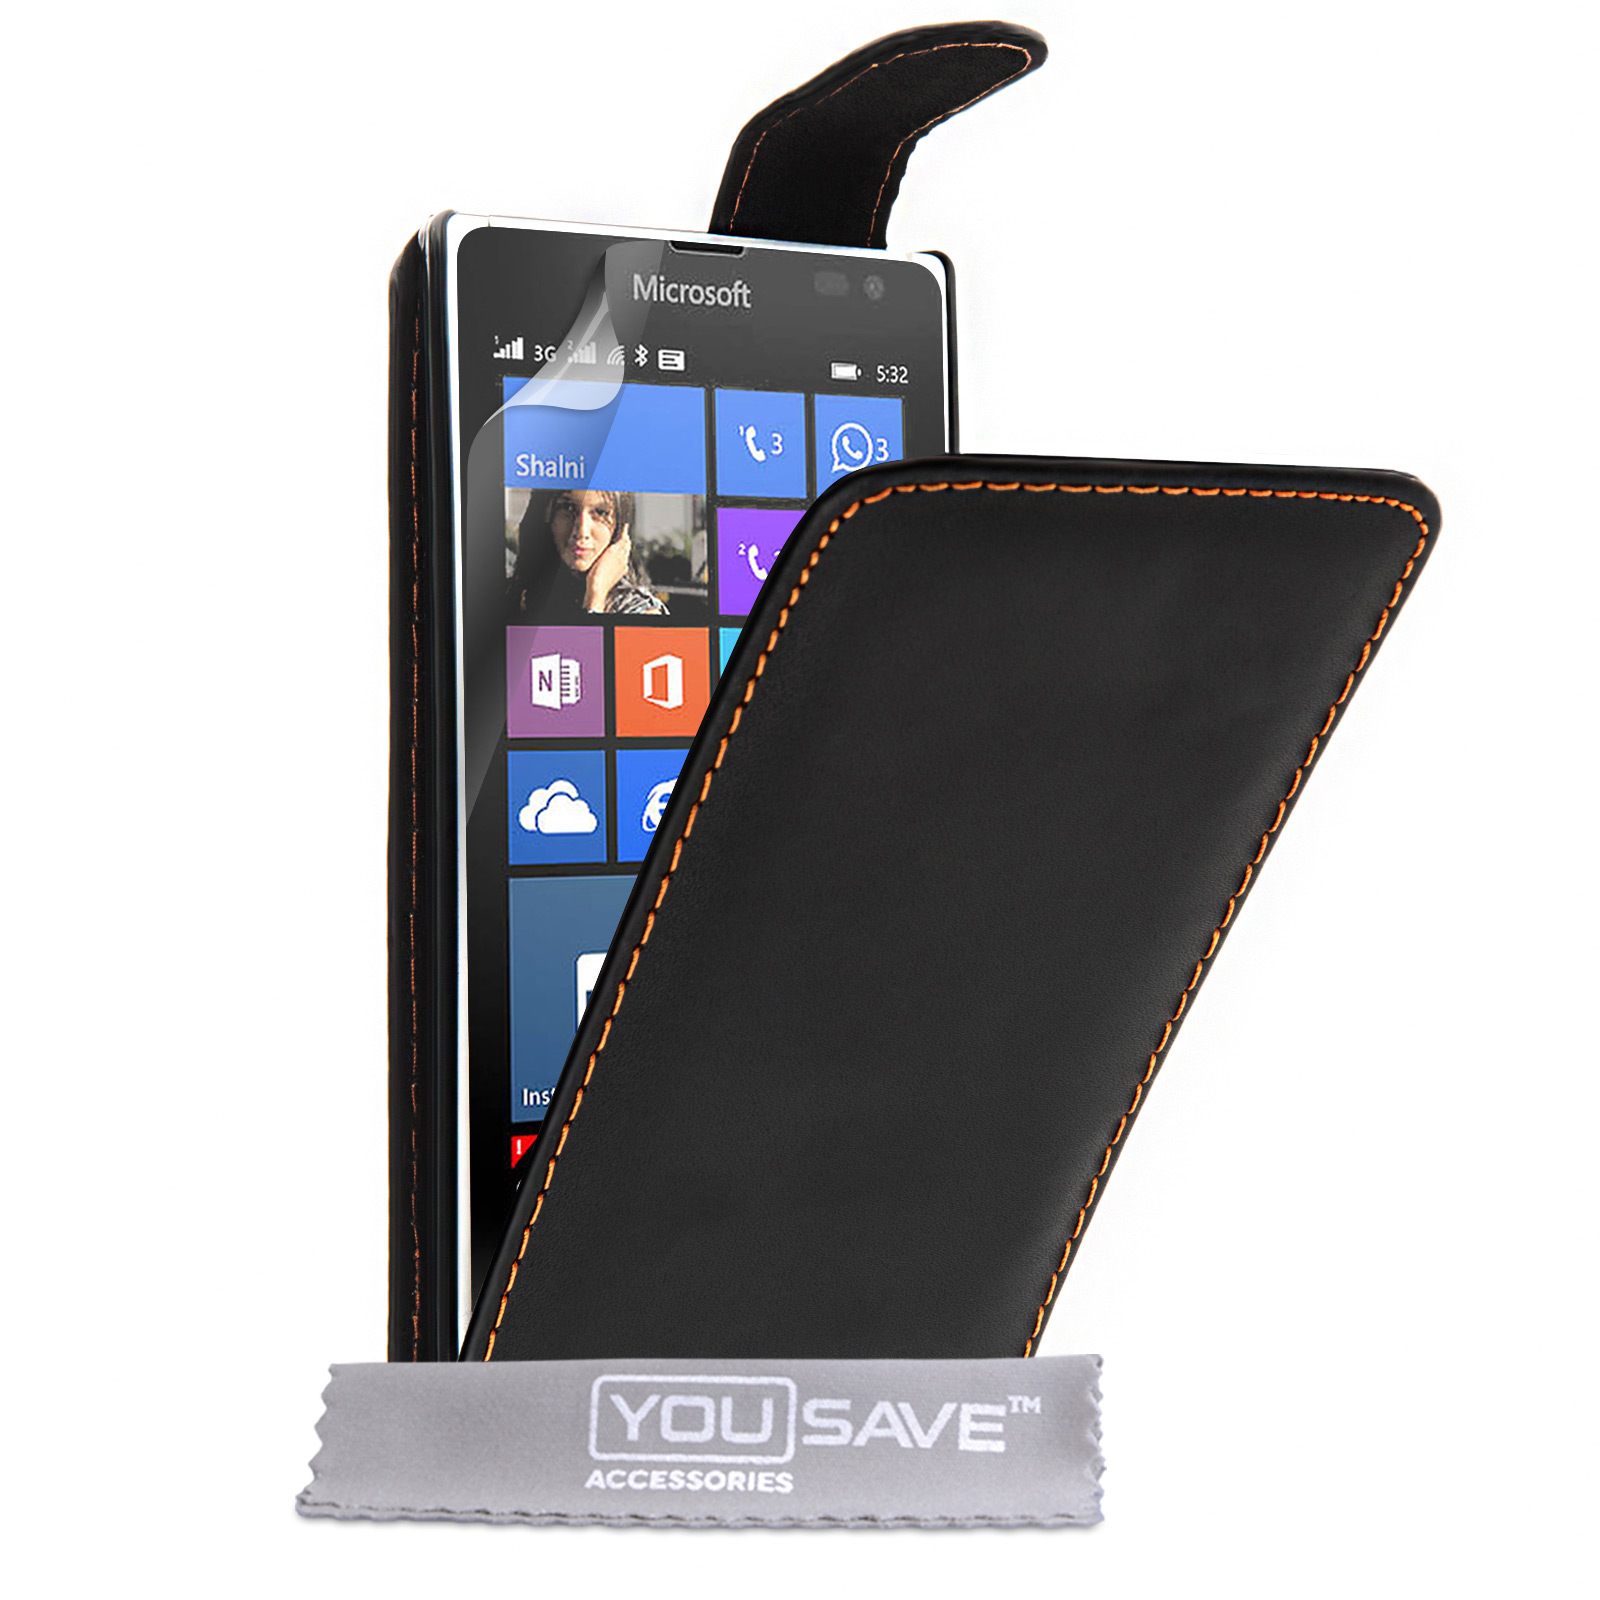 YouSave Microsoft Lumia 532 Leather-Effect Flip Case - Black